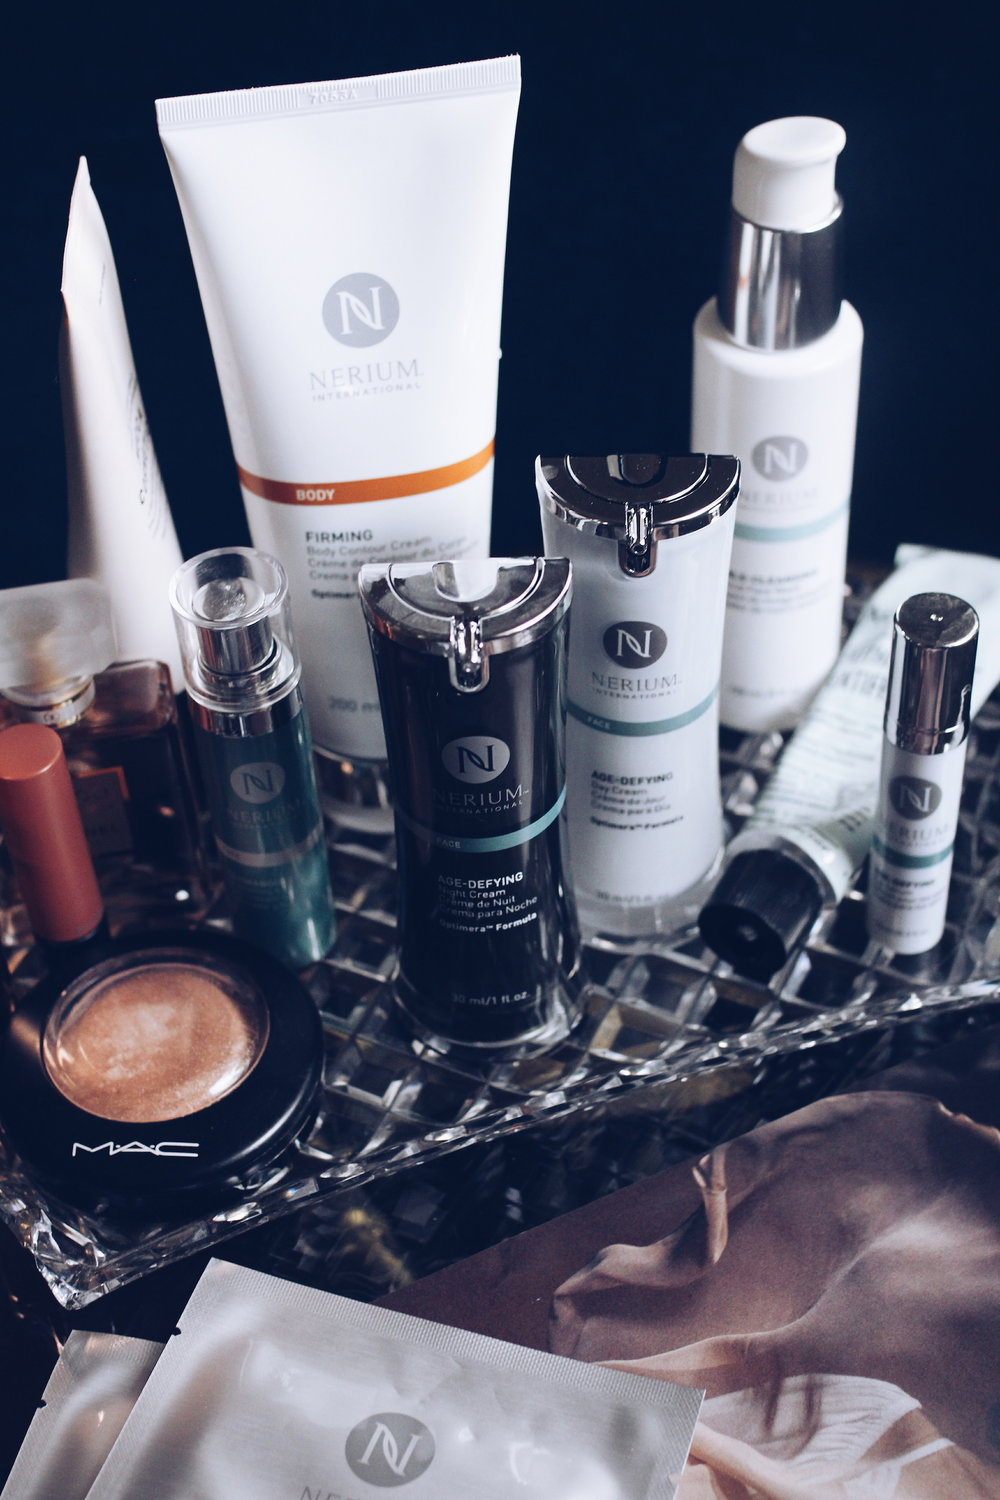 Nerium Beauty Products